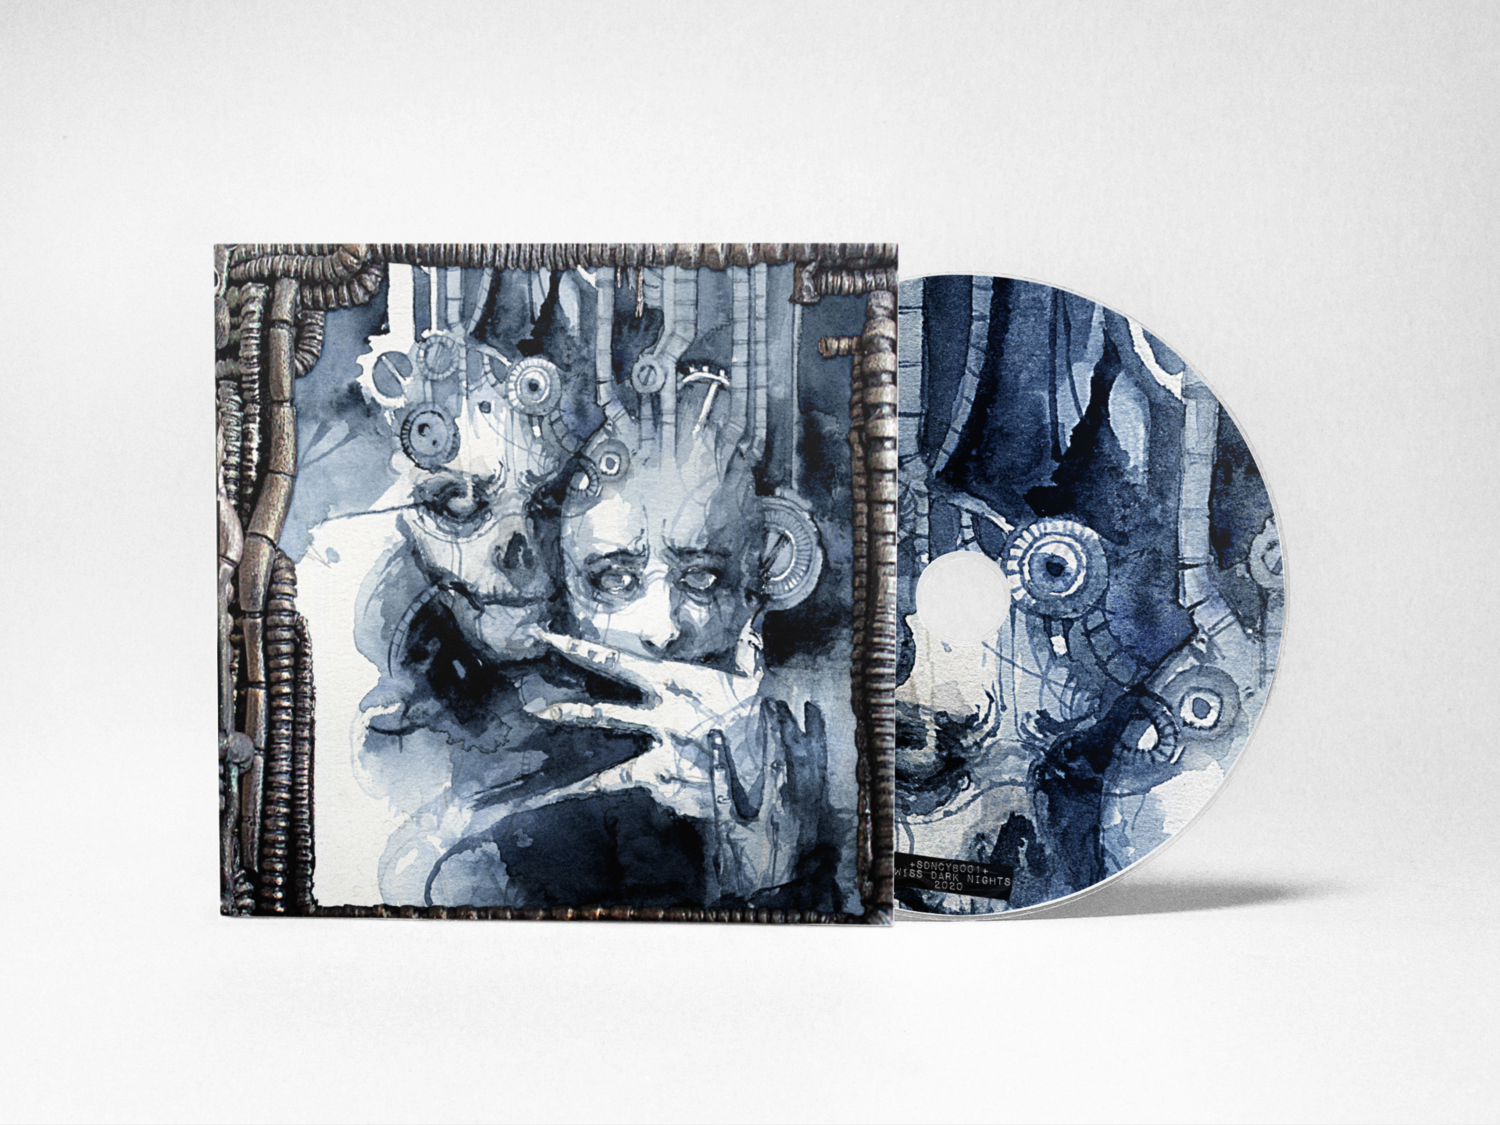 Muter Deluxe Edition CD